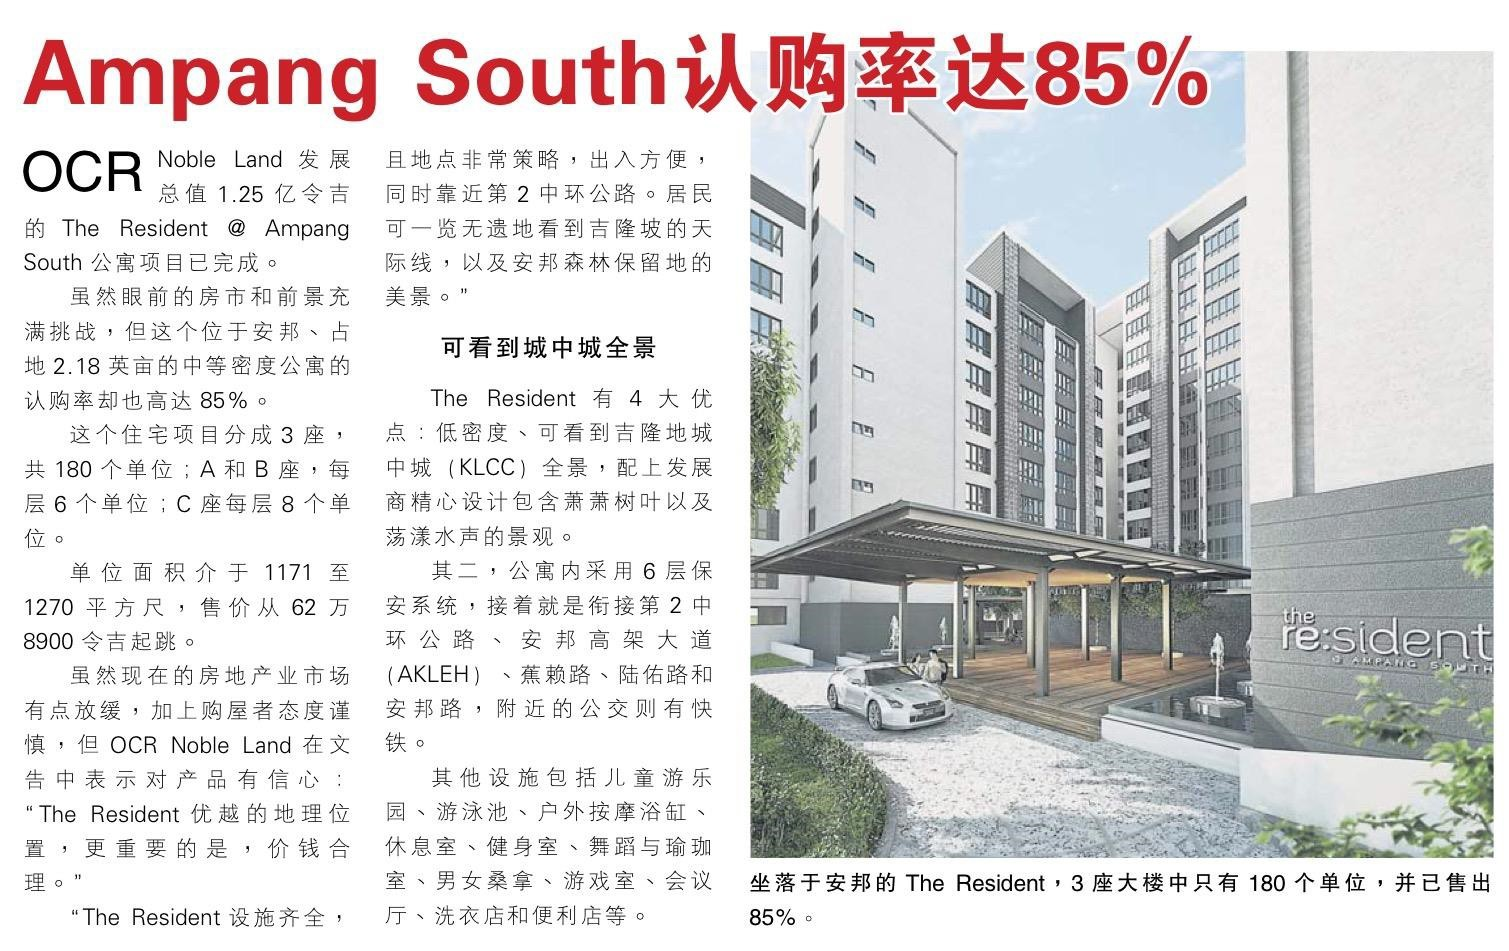 Ampang South Achieves a Take Up Rate of 85%